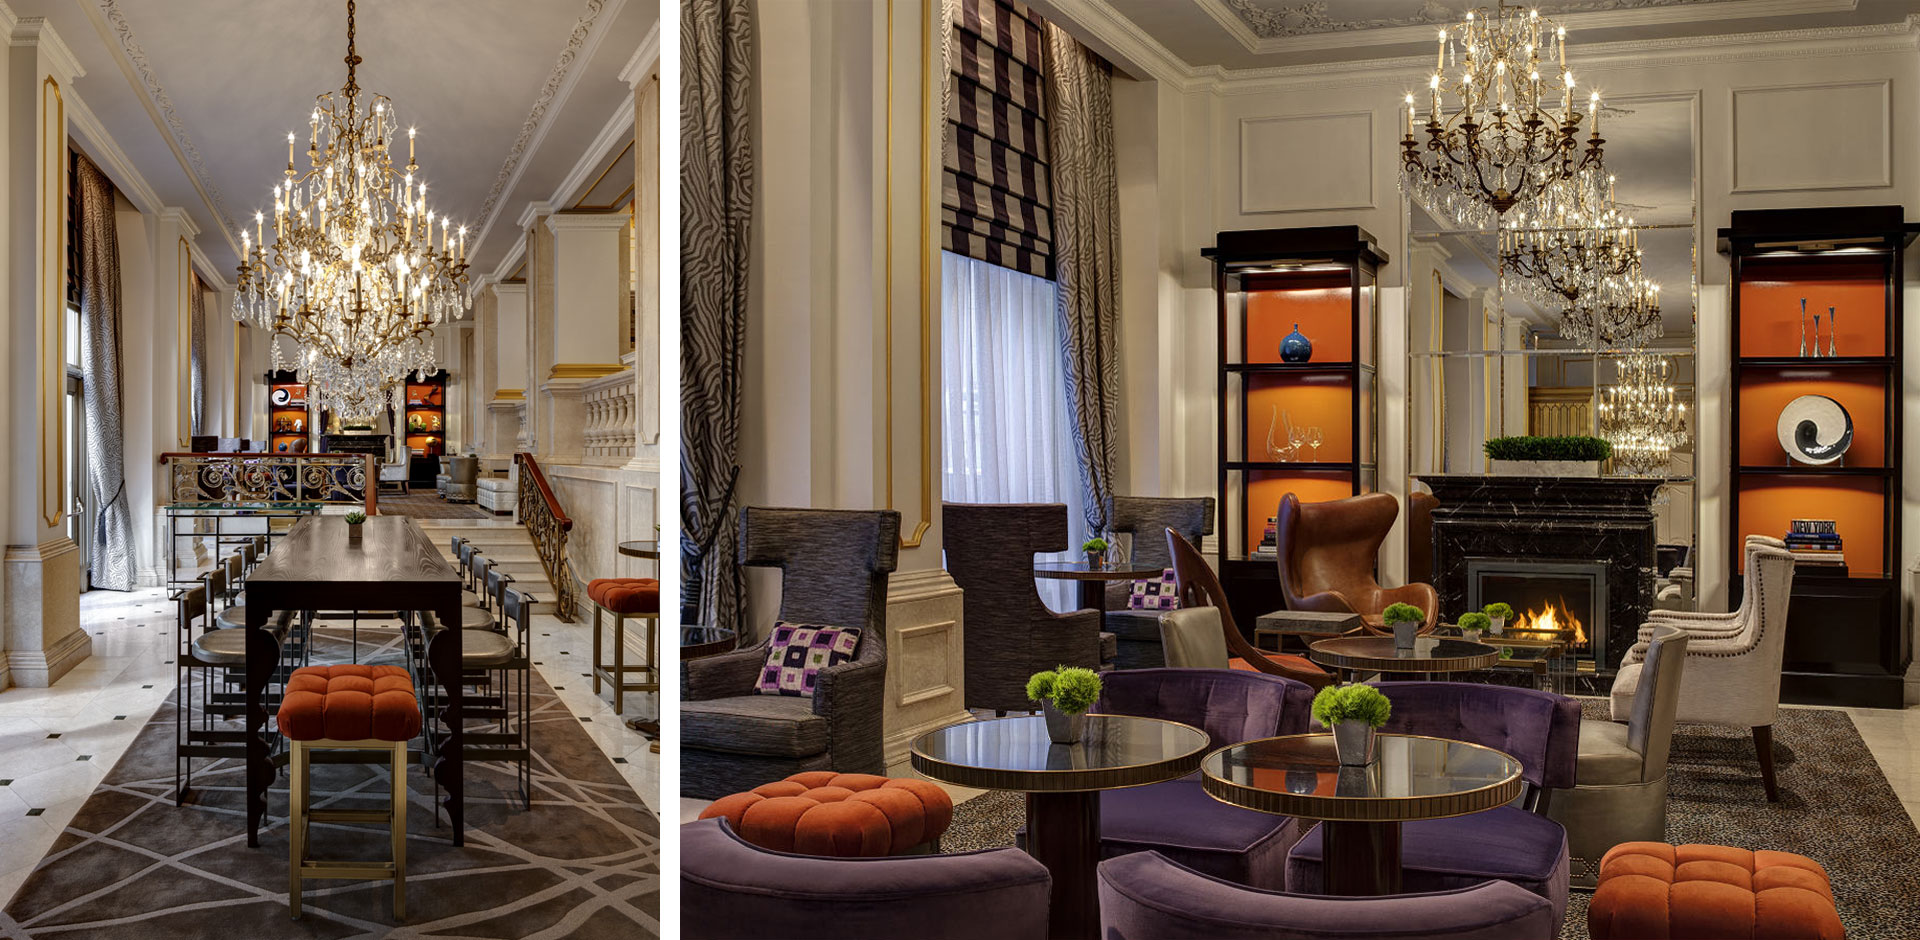 St Regis, New York - King Cole Bar and Salon